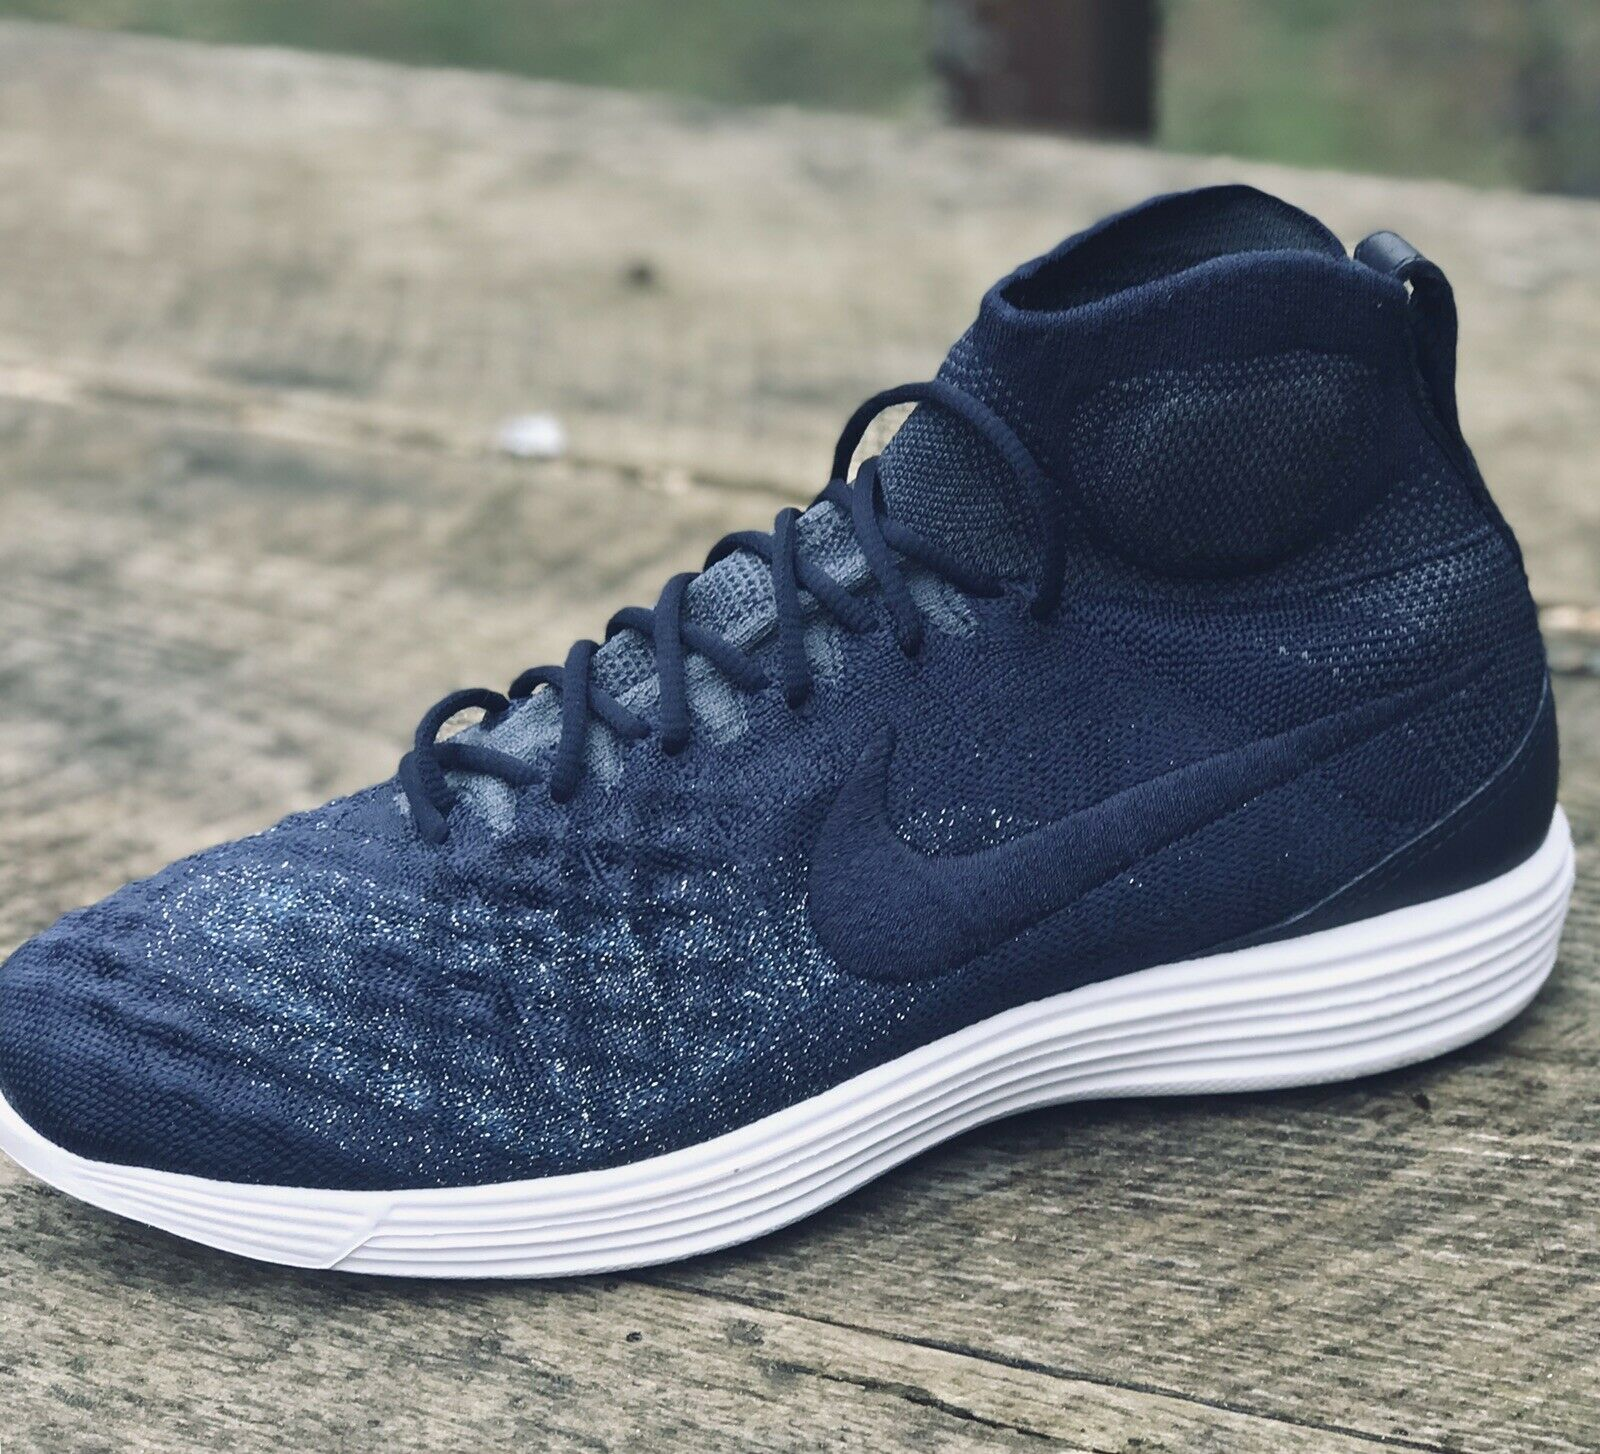 c23cf9ccc2 New 200 Nike Lunar Magista 2 II Flyknit FC Training shoes - Navy bluee Mens  10